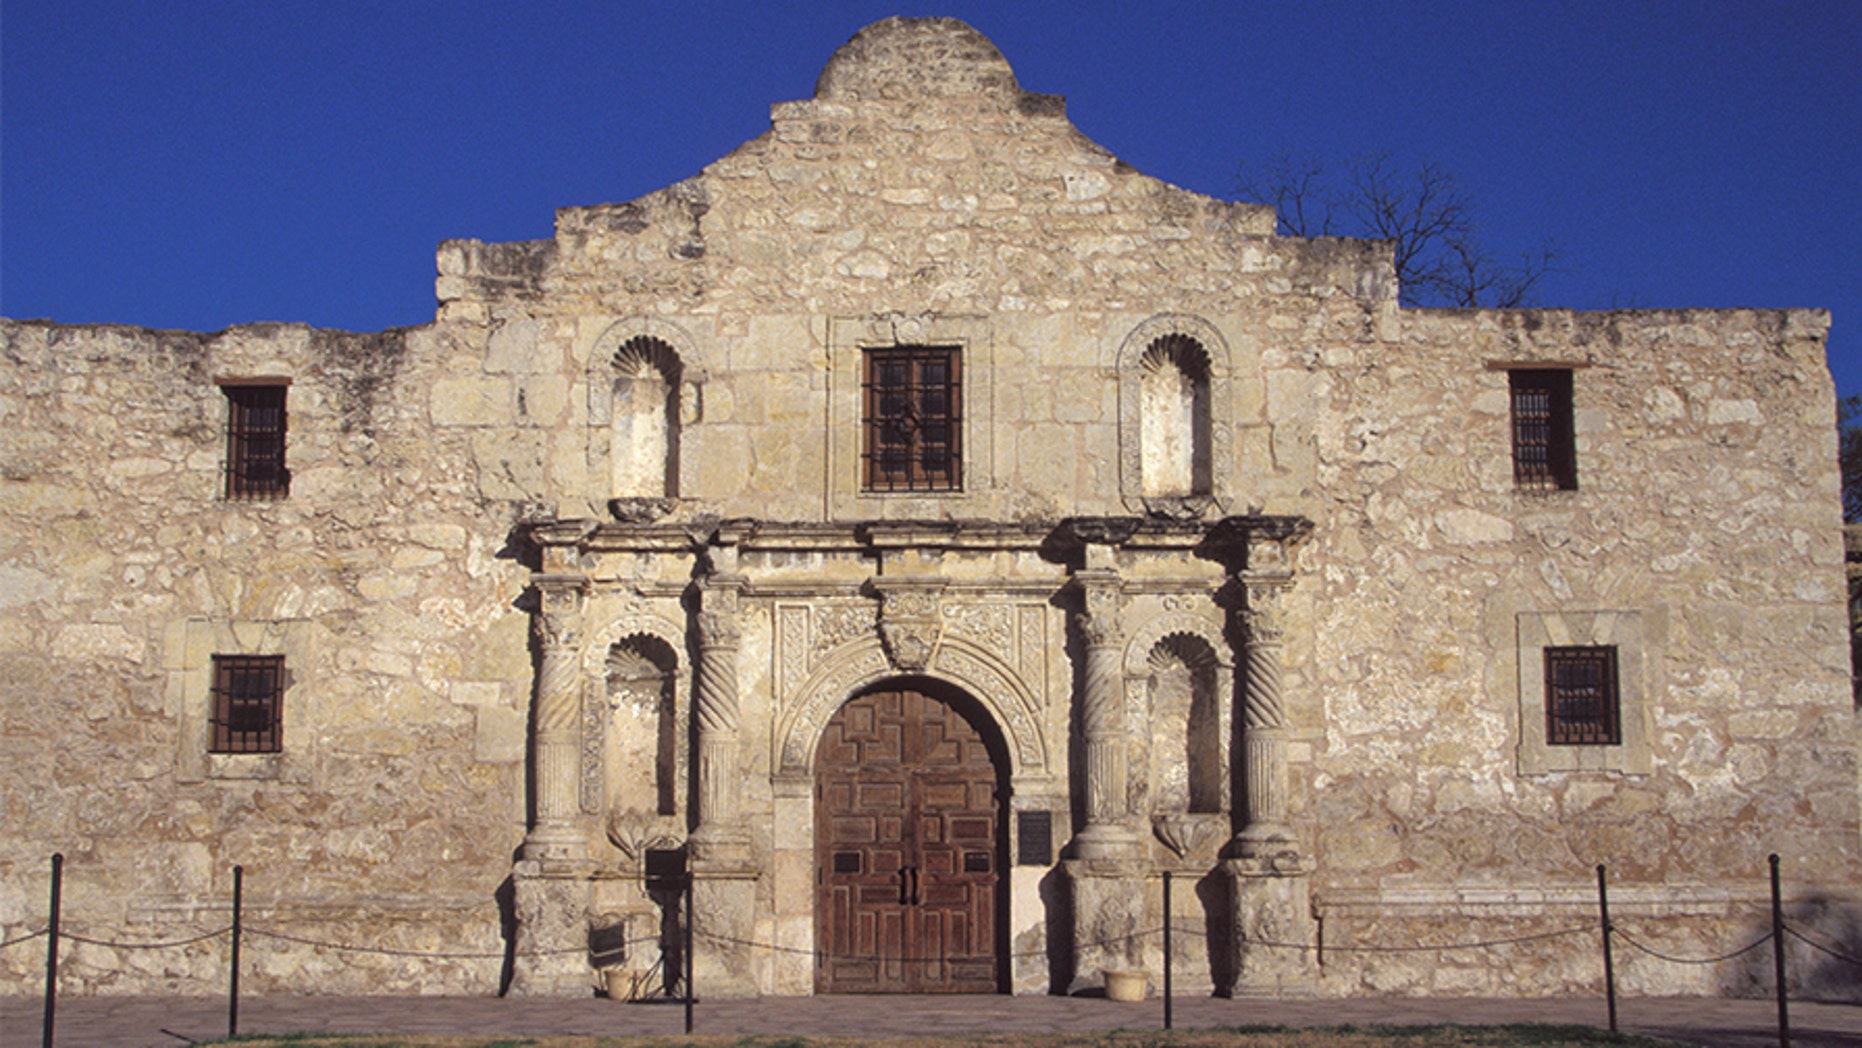 The Social Stu S Curriculum For 7th Graders In Texas Learning About The Alamo Could Reportedly Face